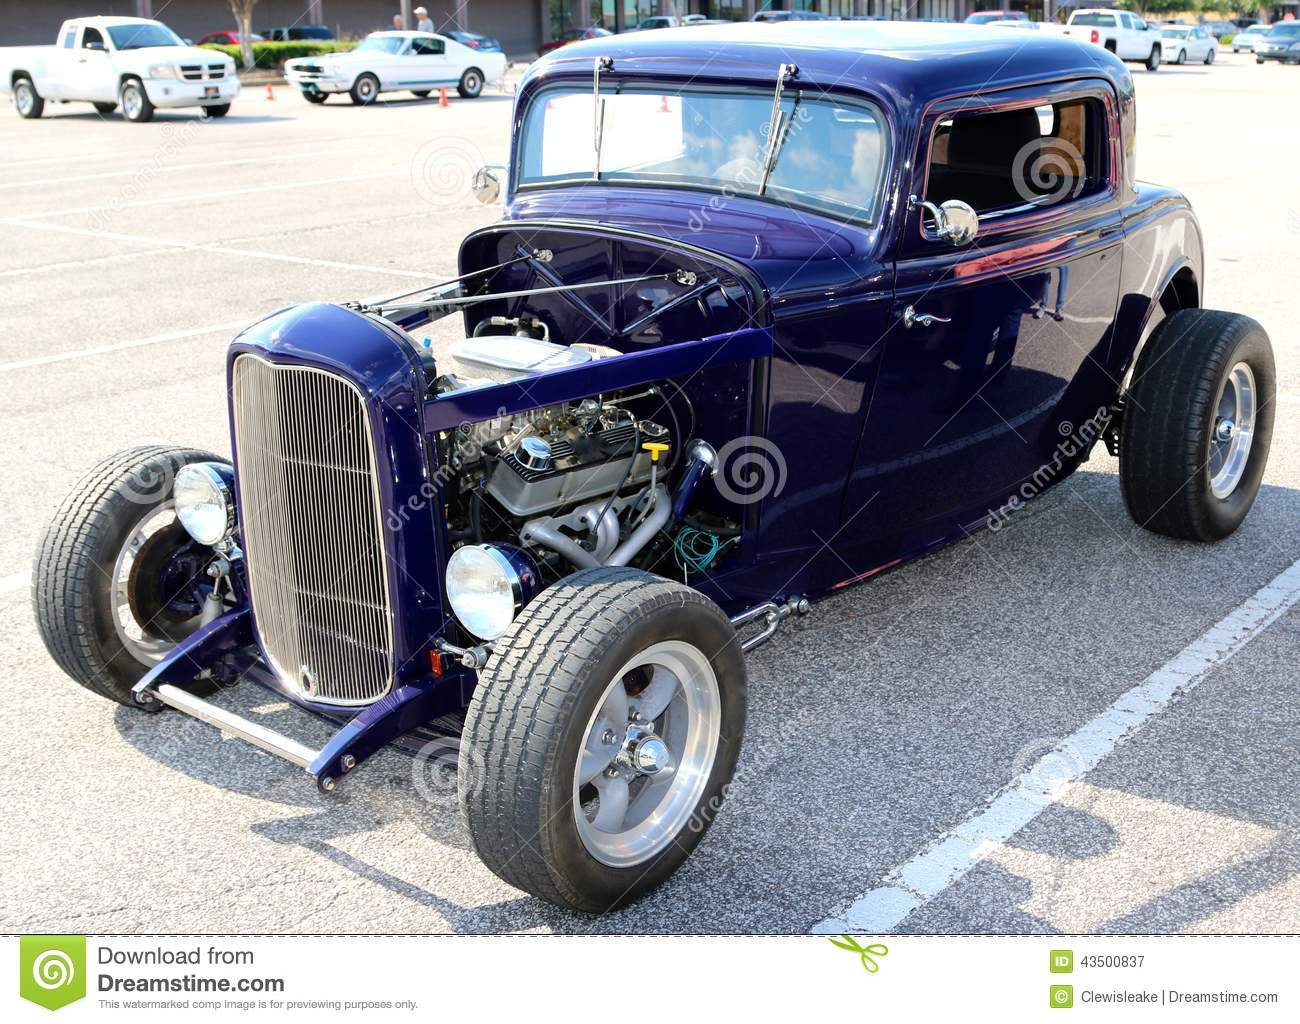 front view of purple 1940's ford t-bucket antique convertible car